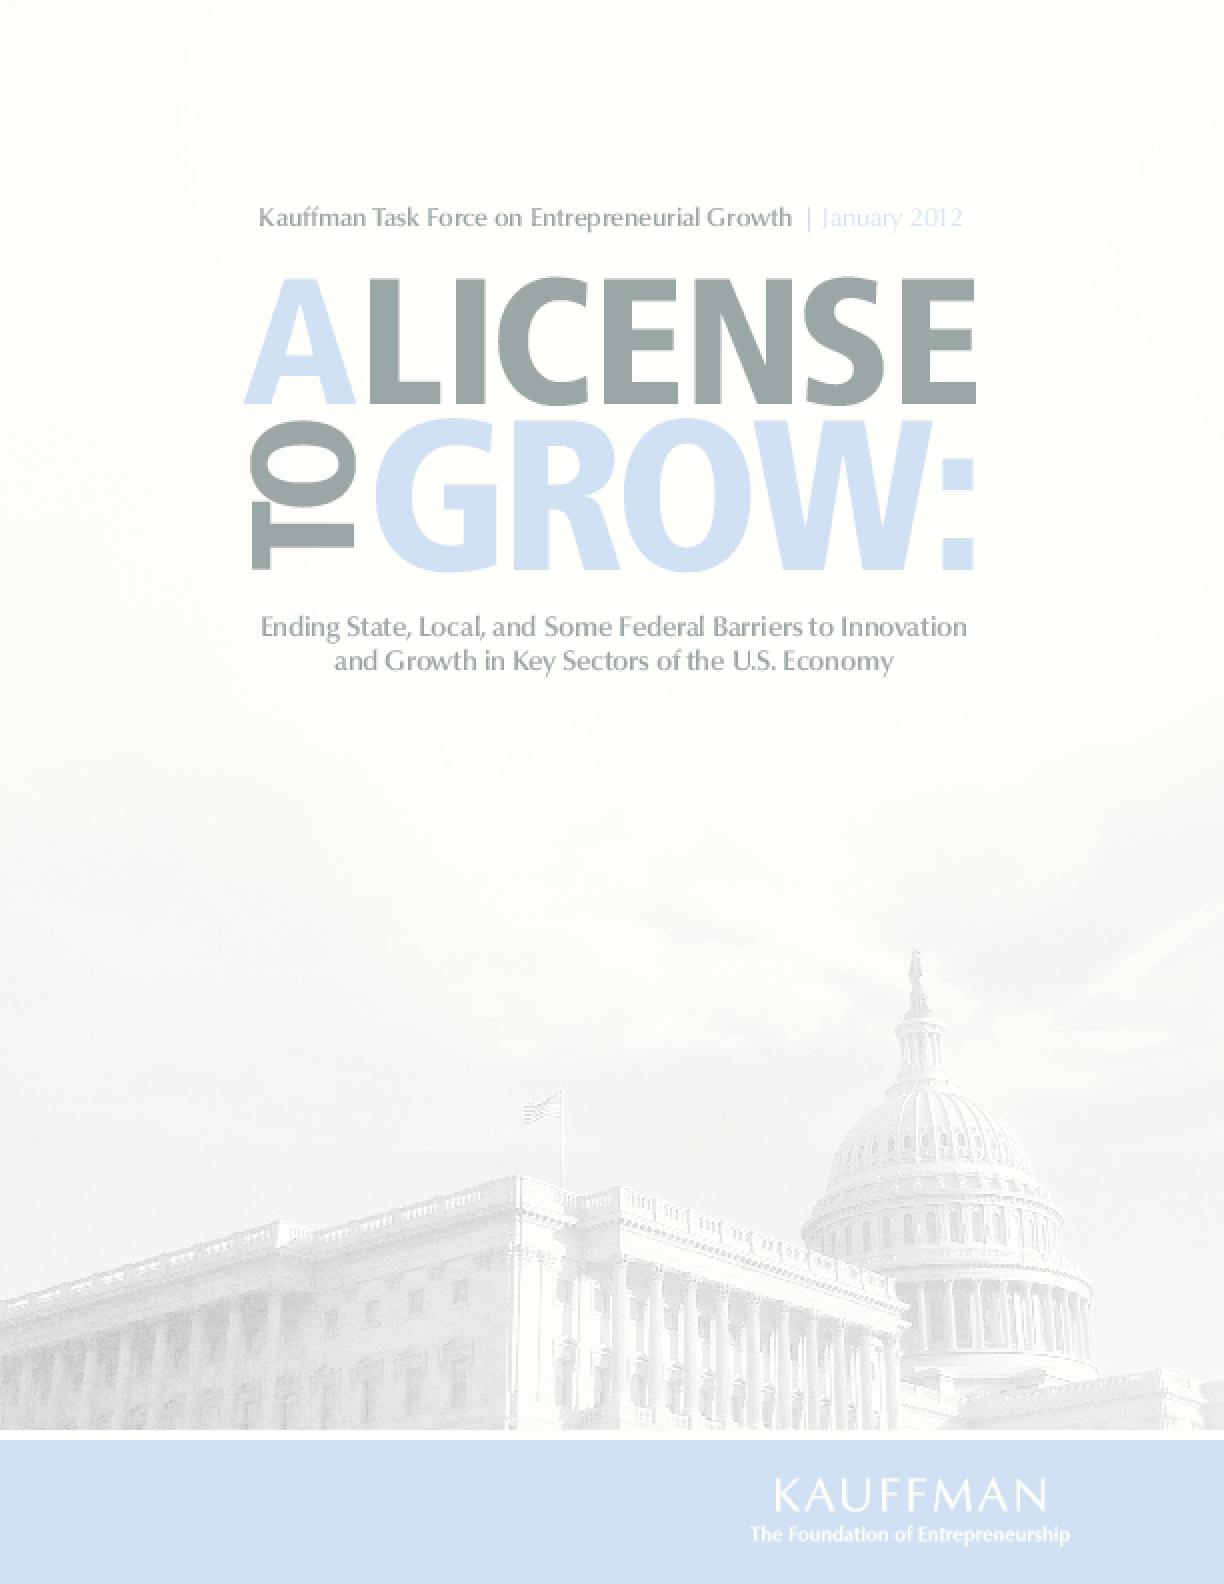 A License to Grow: Ending State, Local, and Some Federal Barriers to Innovation and Growth in Key Sectors of the U.S. Economy